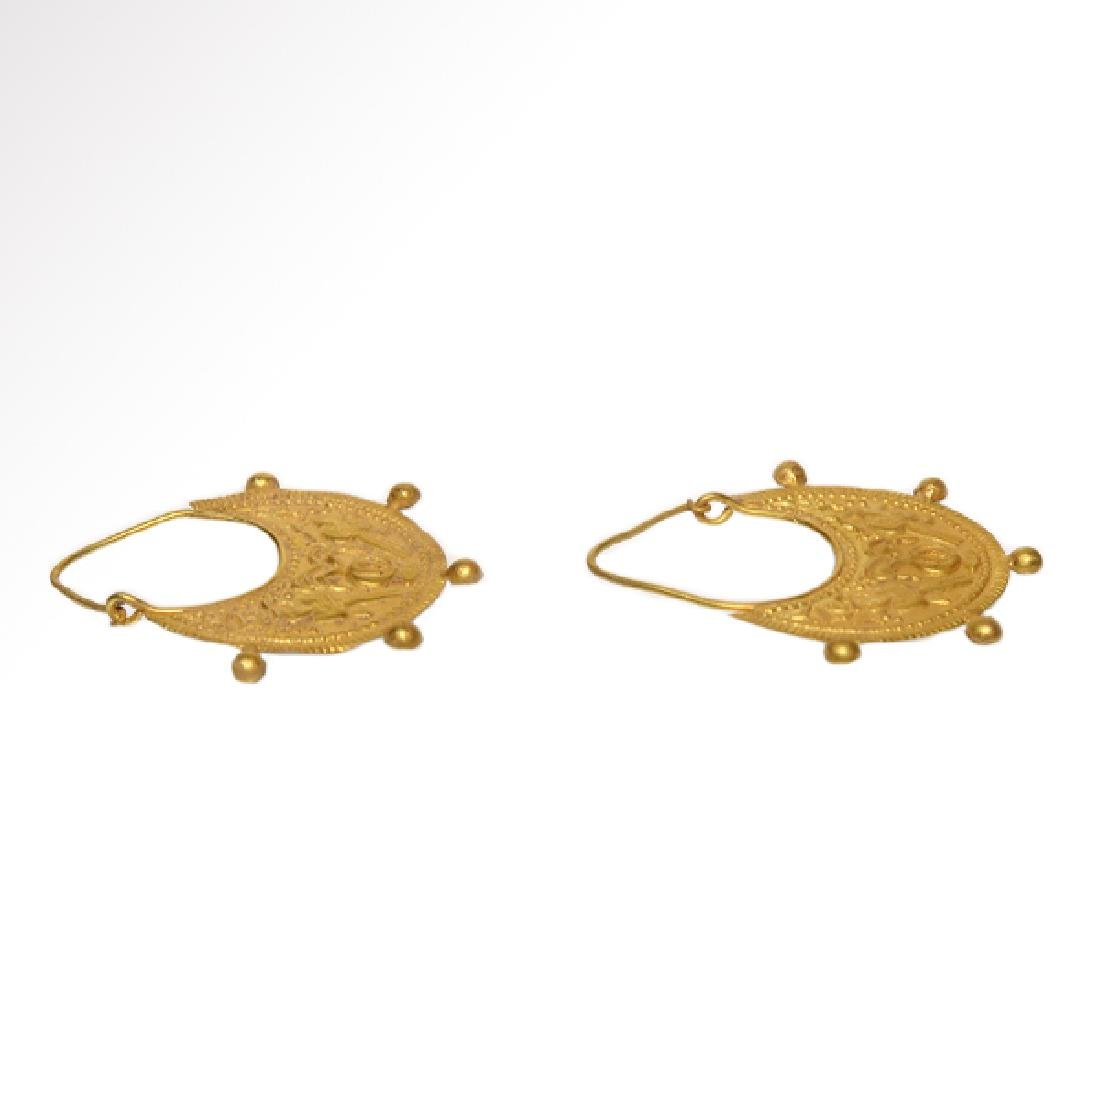 Roman / Early Byzantine Gold Earrings - 6